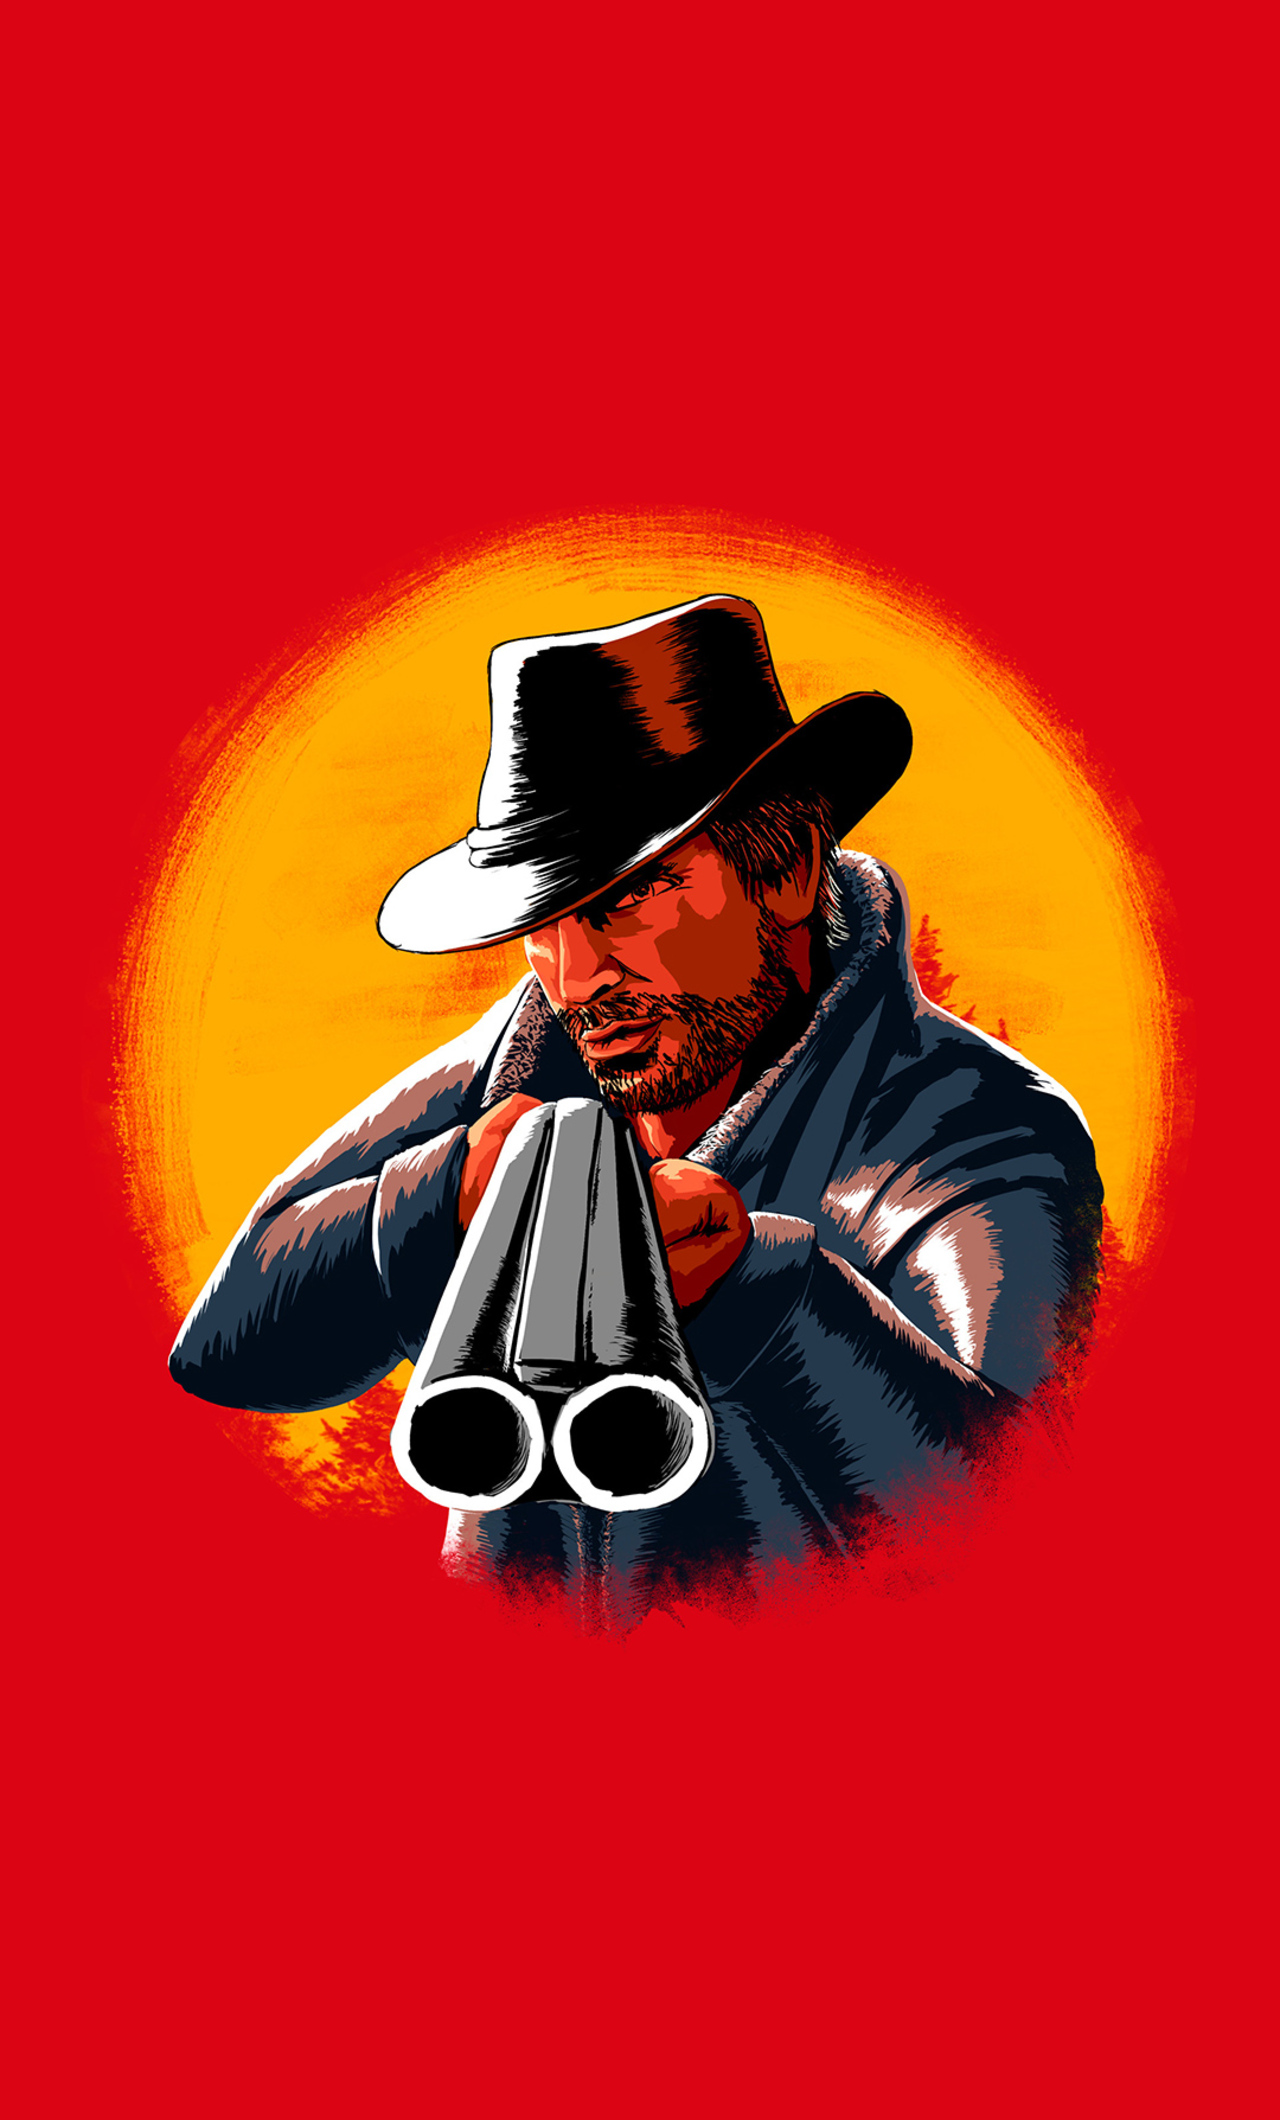 1280x2120 Red Dead Redemption 2 Illustration Iphone 6 Hd 4k